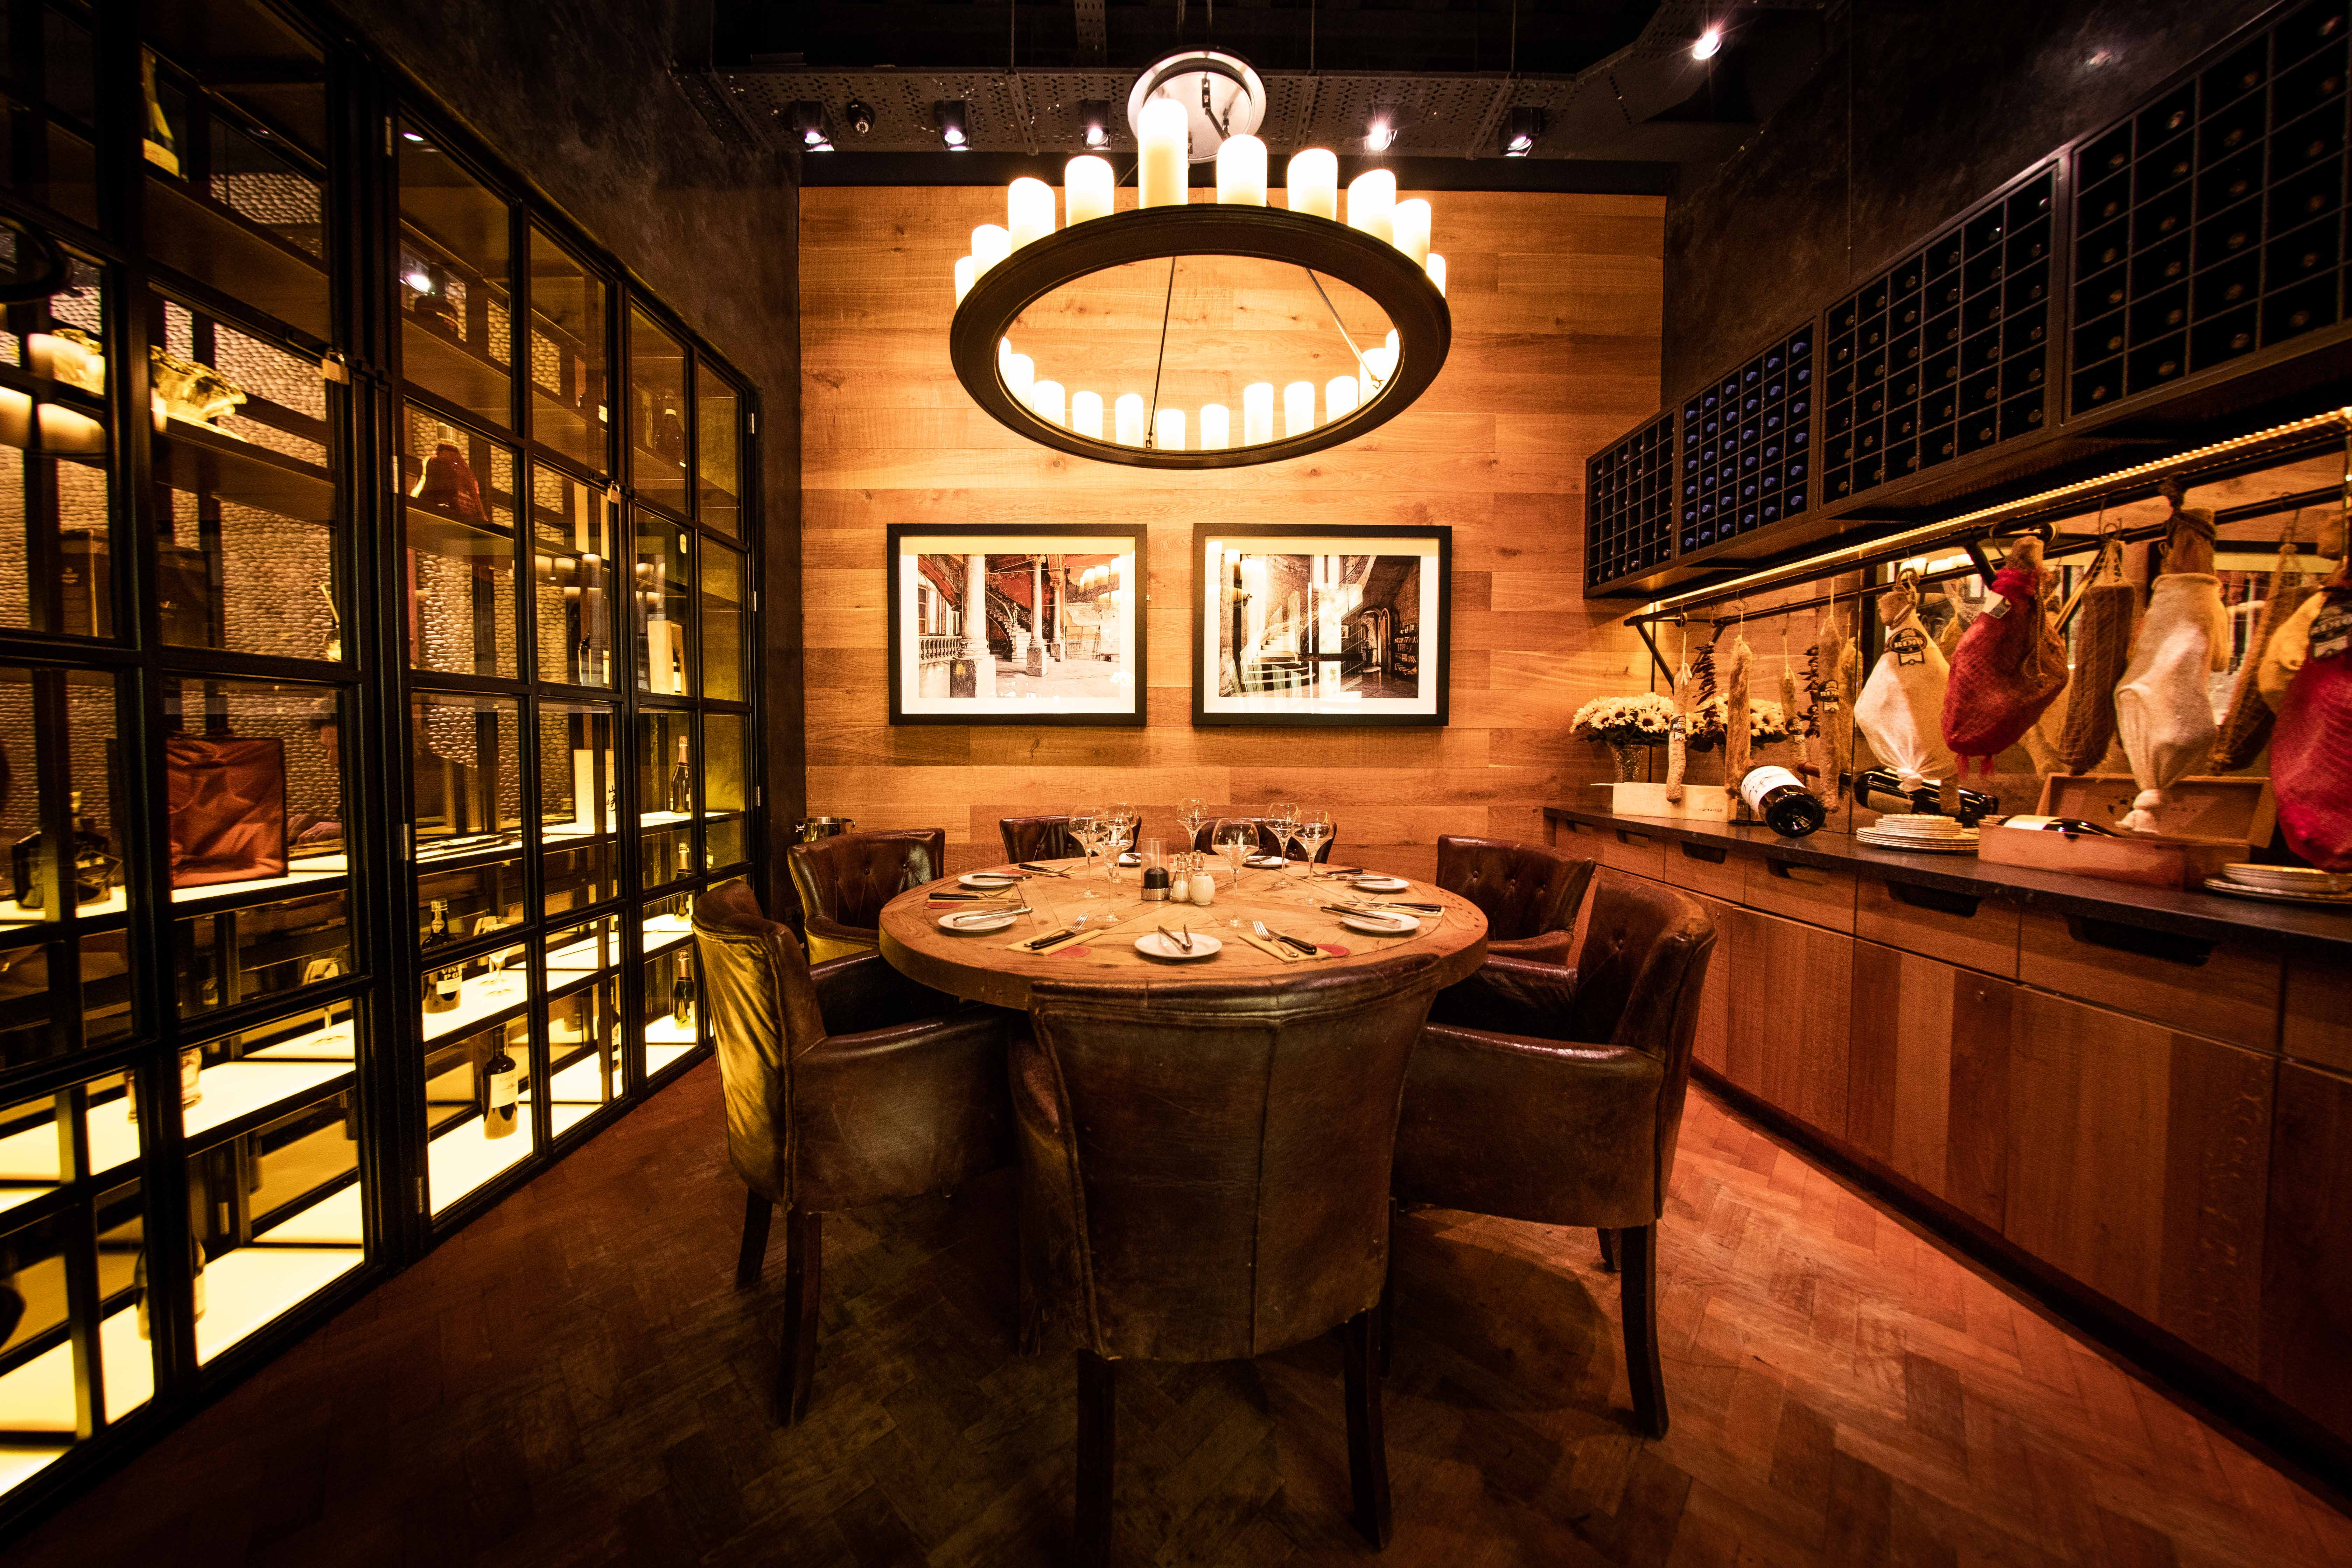 One of Fazenda Manchester's private rooms